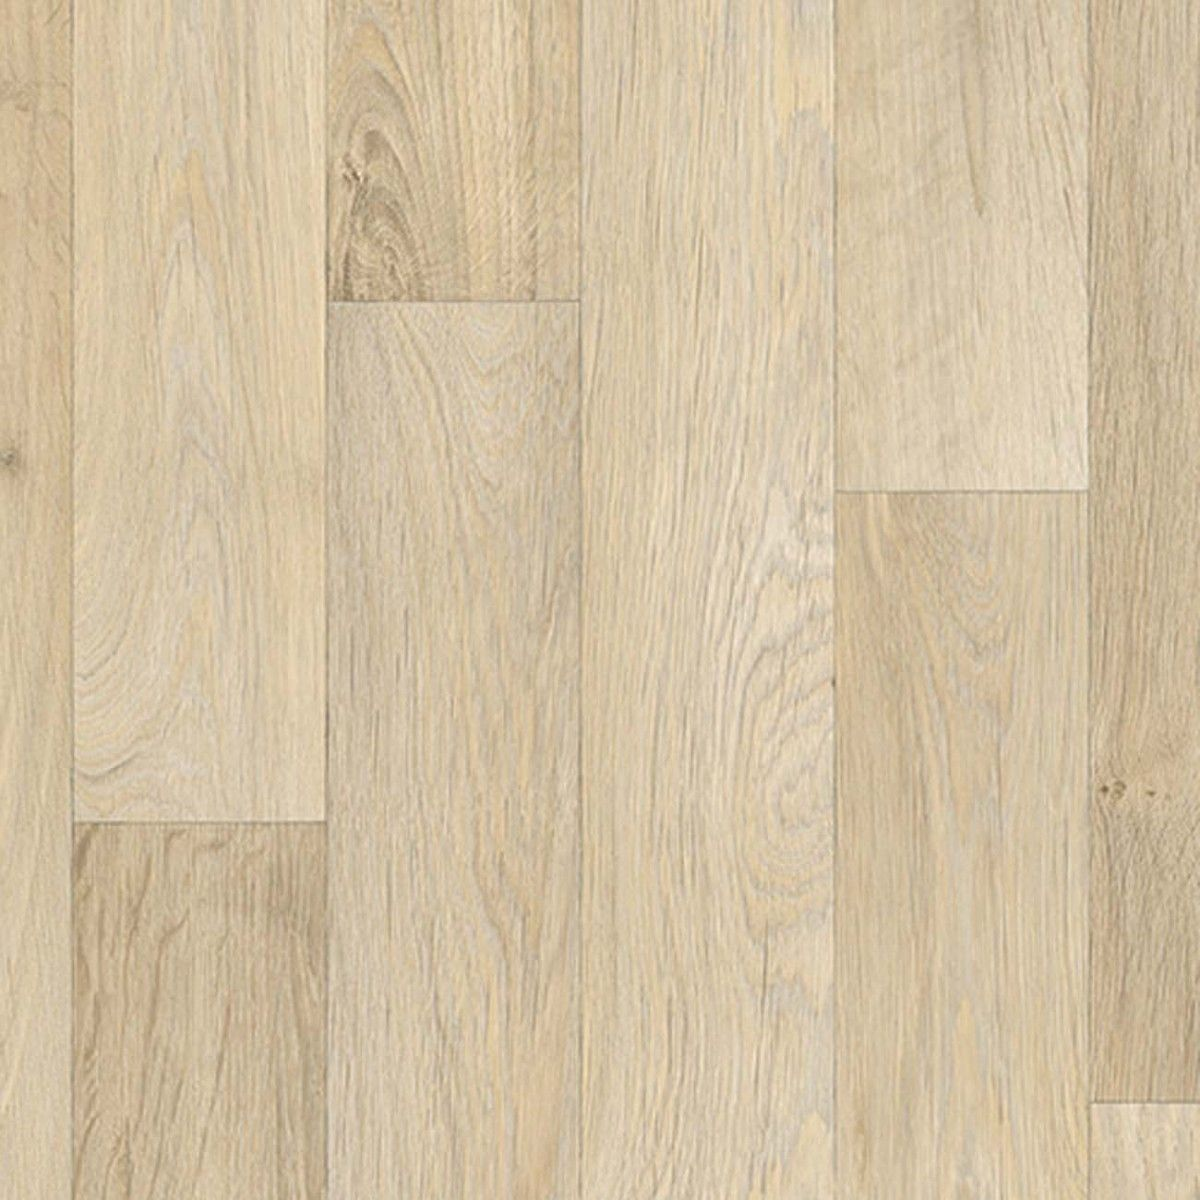 This Superb Mm Thick Vinyl Floor Is Highly Durable And Easy To - Flooring slip resistance ratings